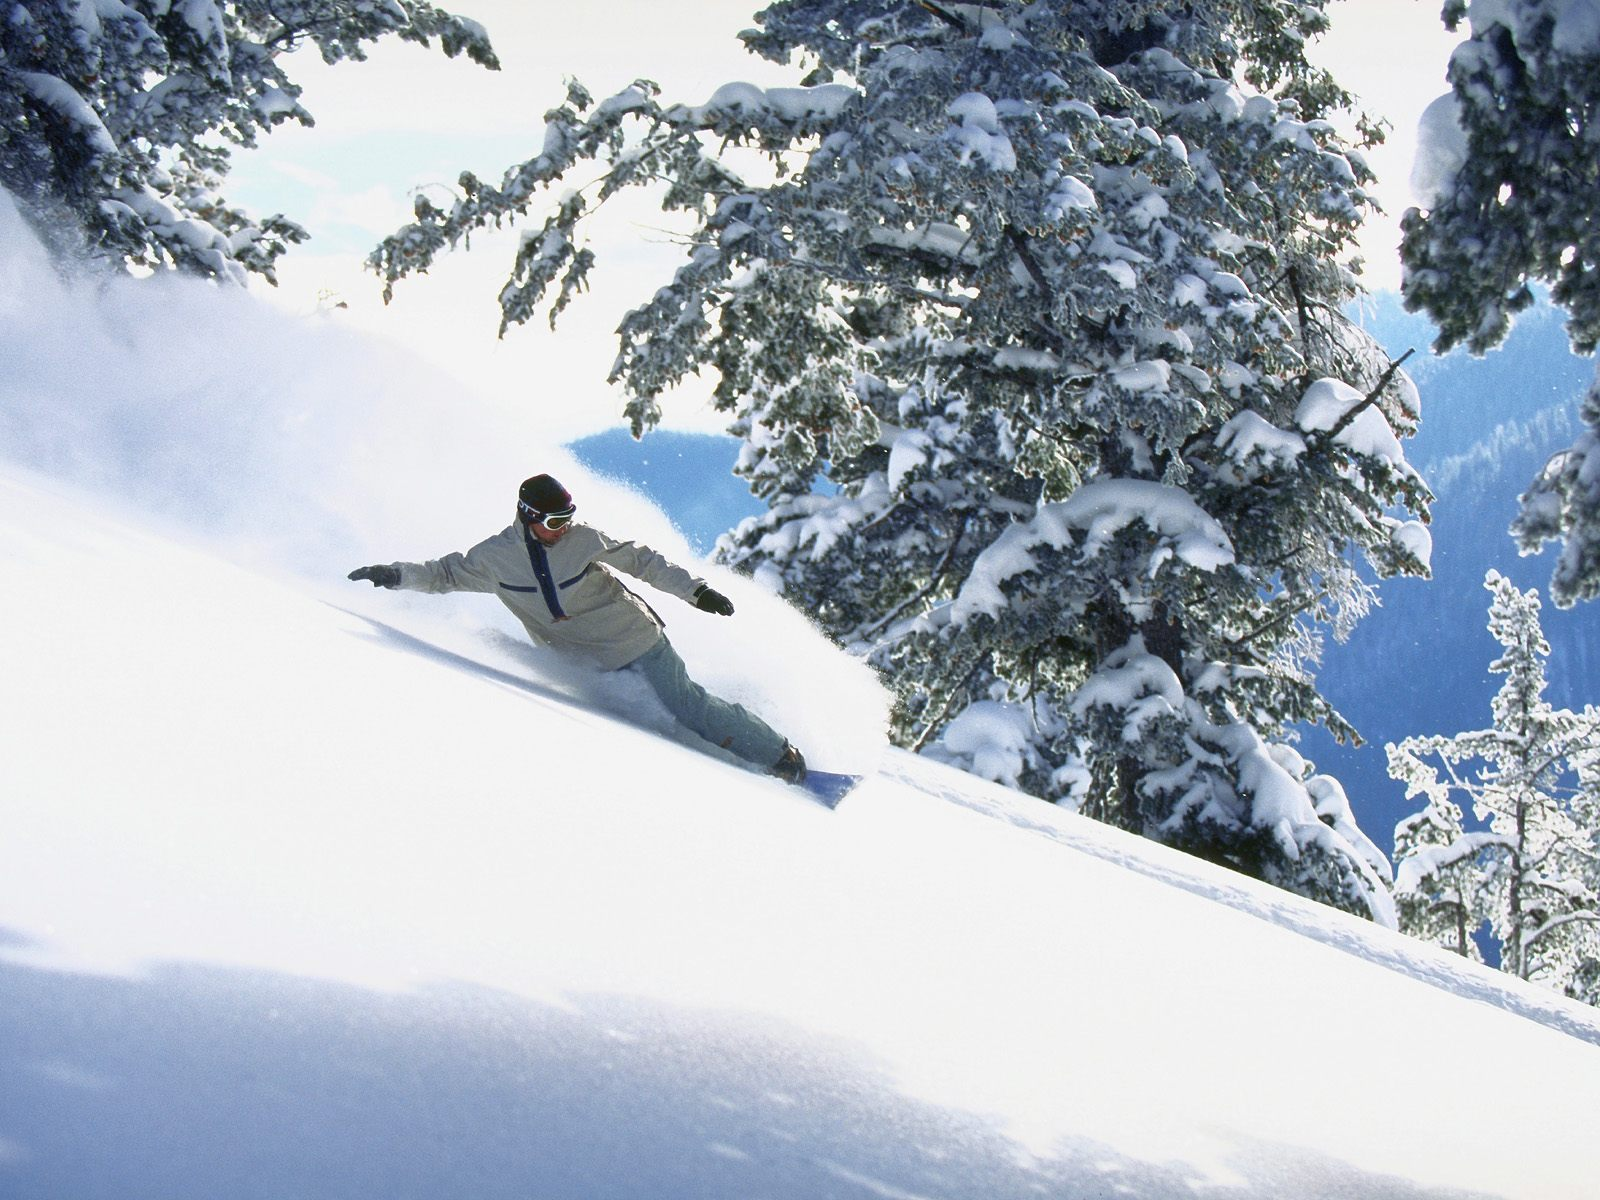 extreme snowboarding wallpapers - photo #8